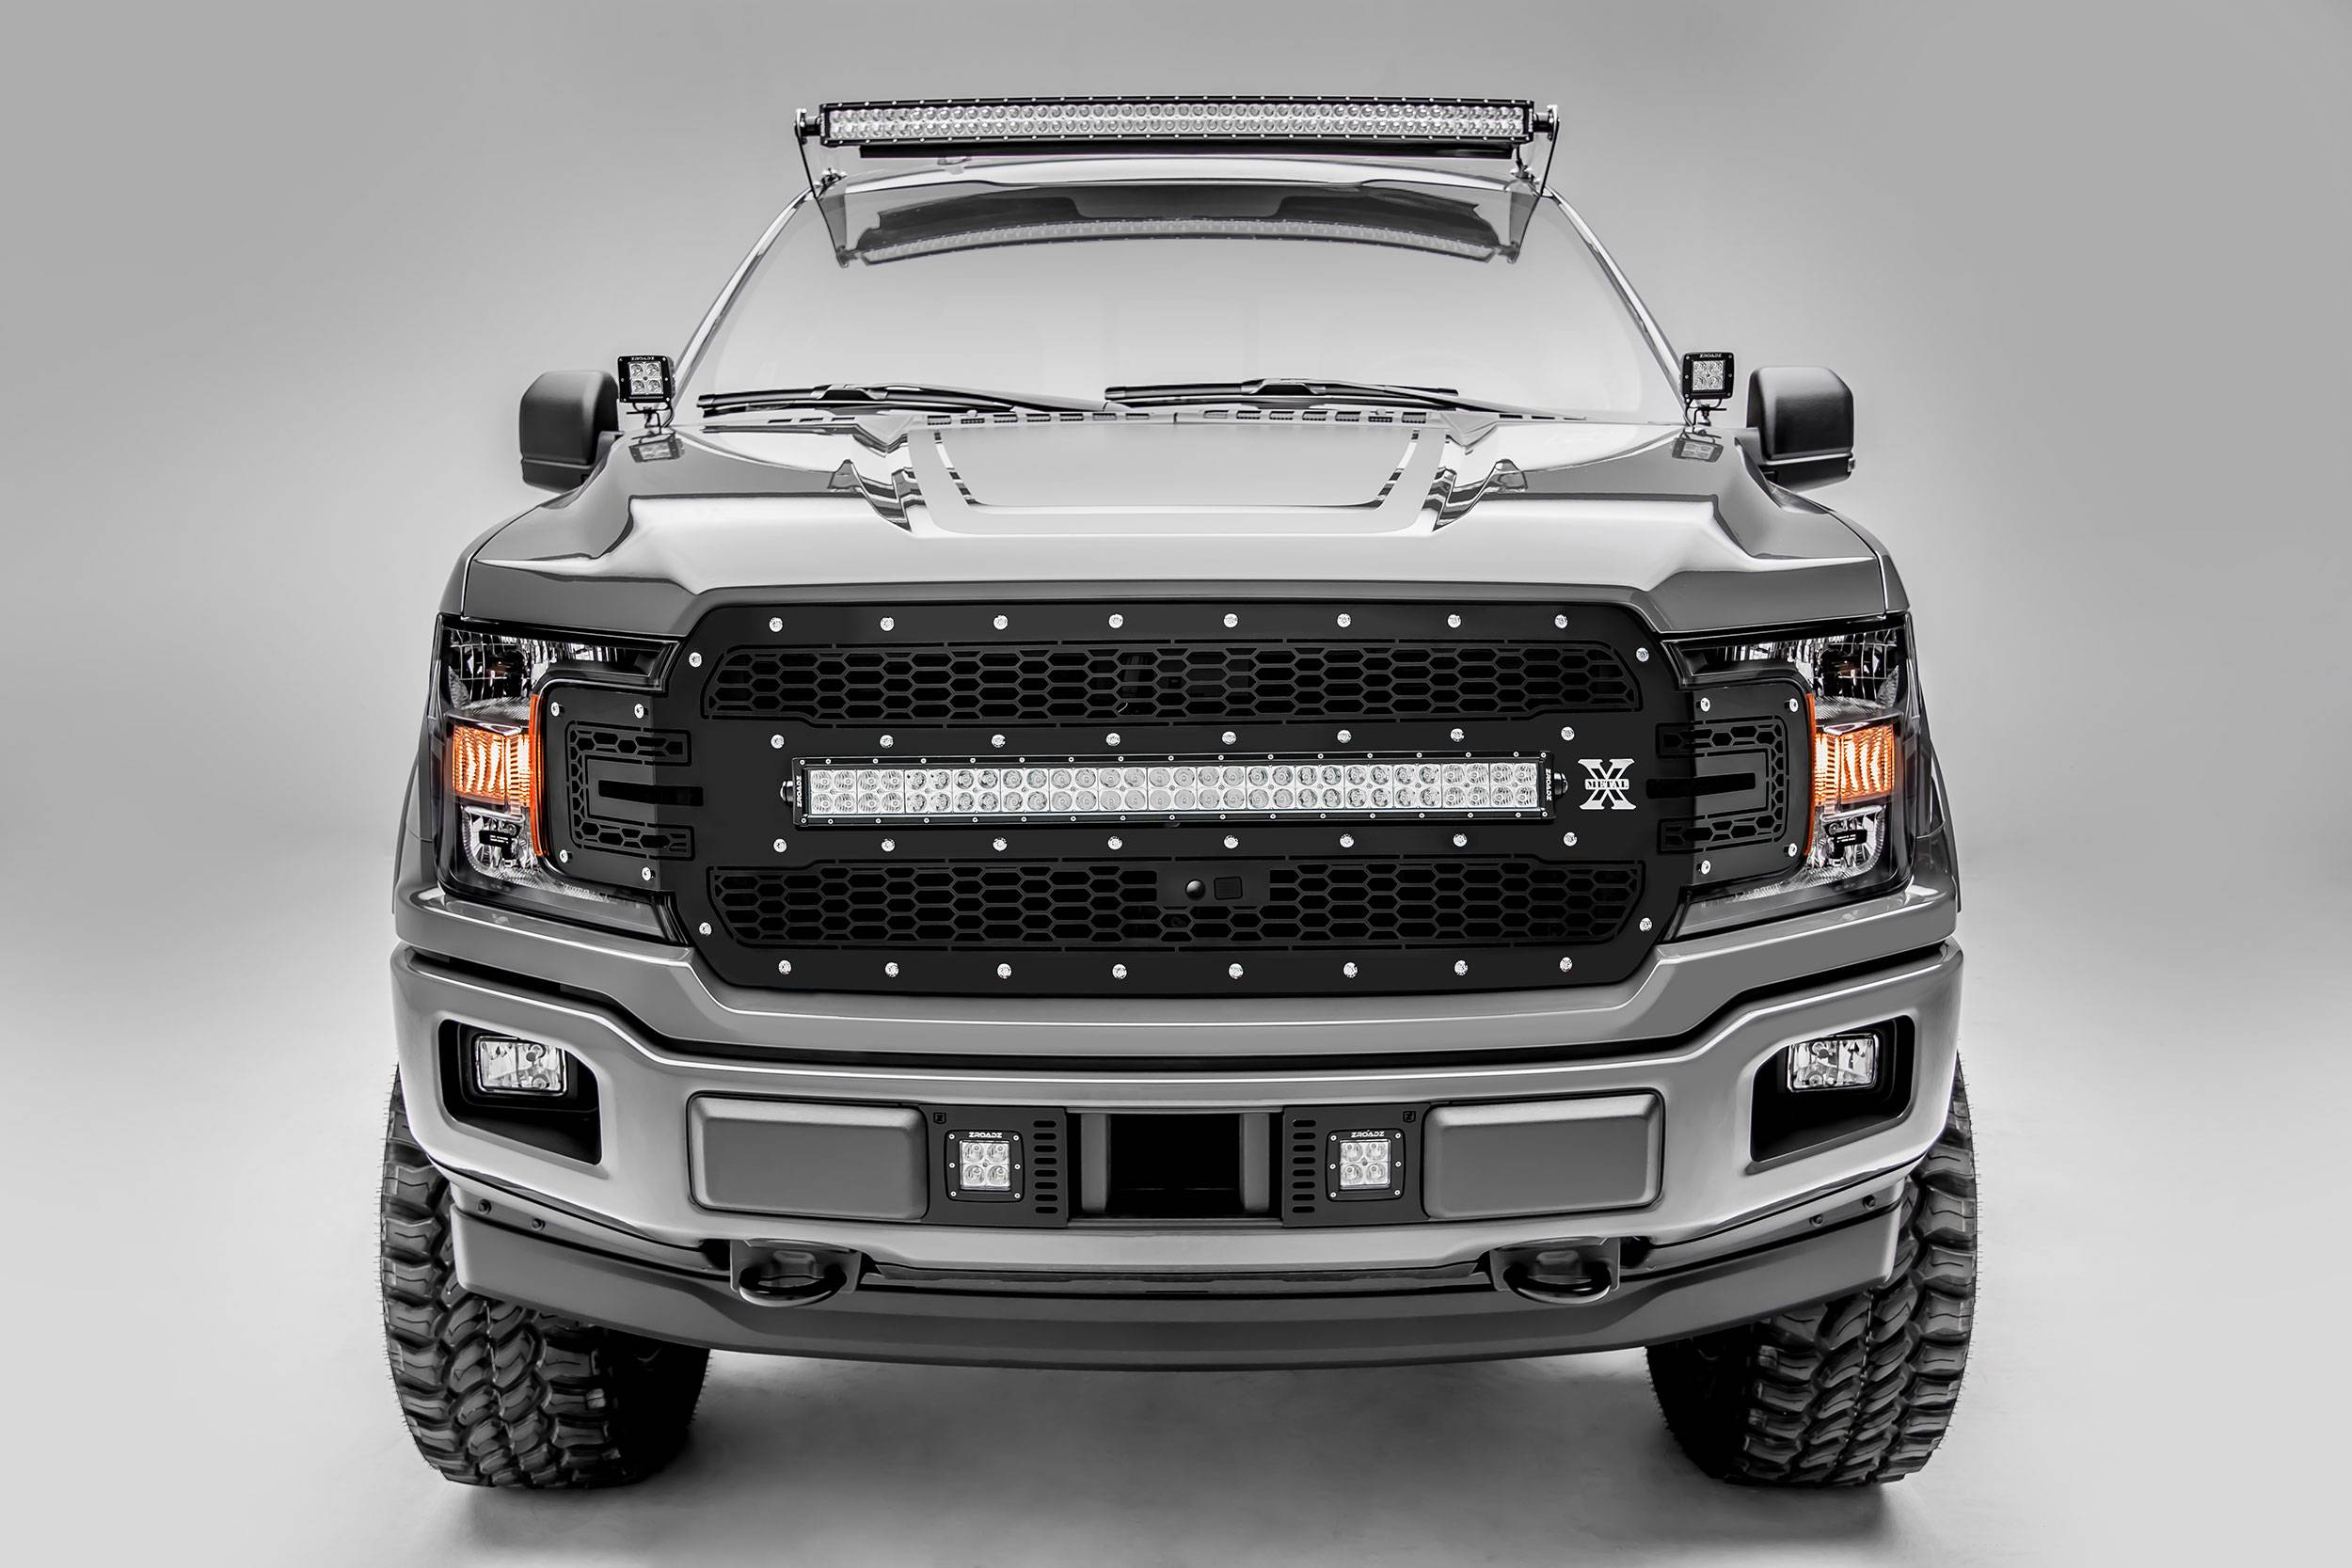 T-REX Grilles - 2018-2020 F-150 Laser Torch Grille, Black, 1 Pc, Replacement, Chrome Studs, Incl. 30 Inch LED, Fits Vehicles with Camera - PN #7315751